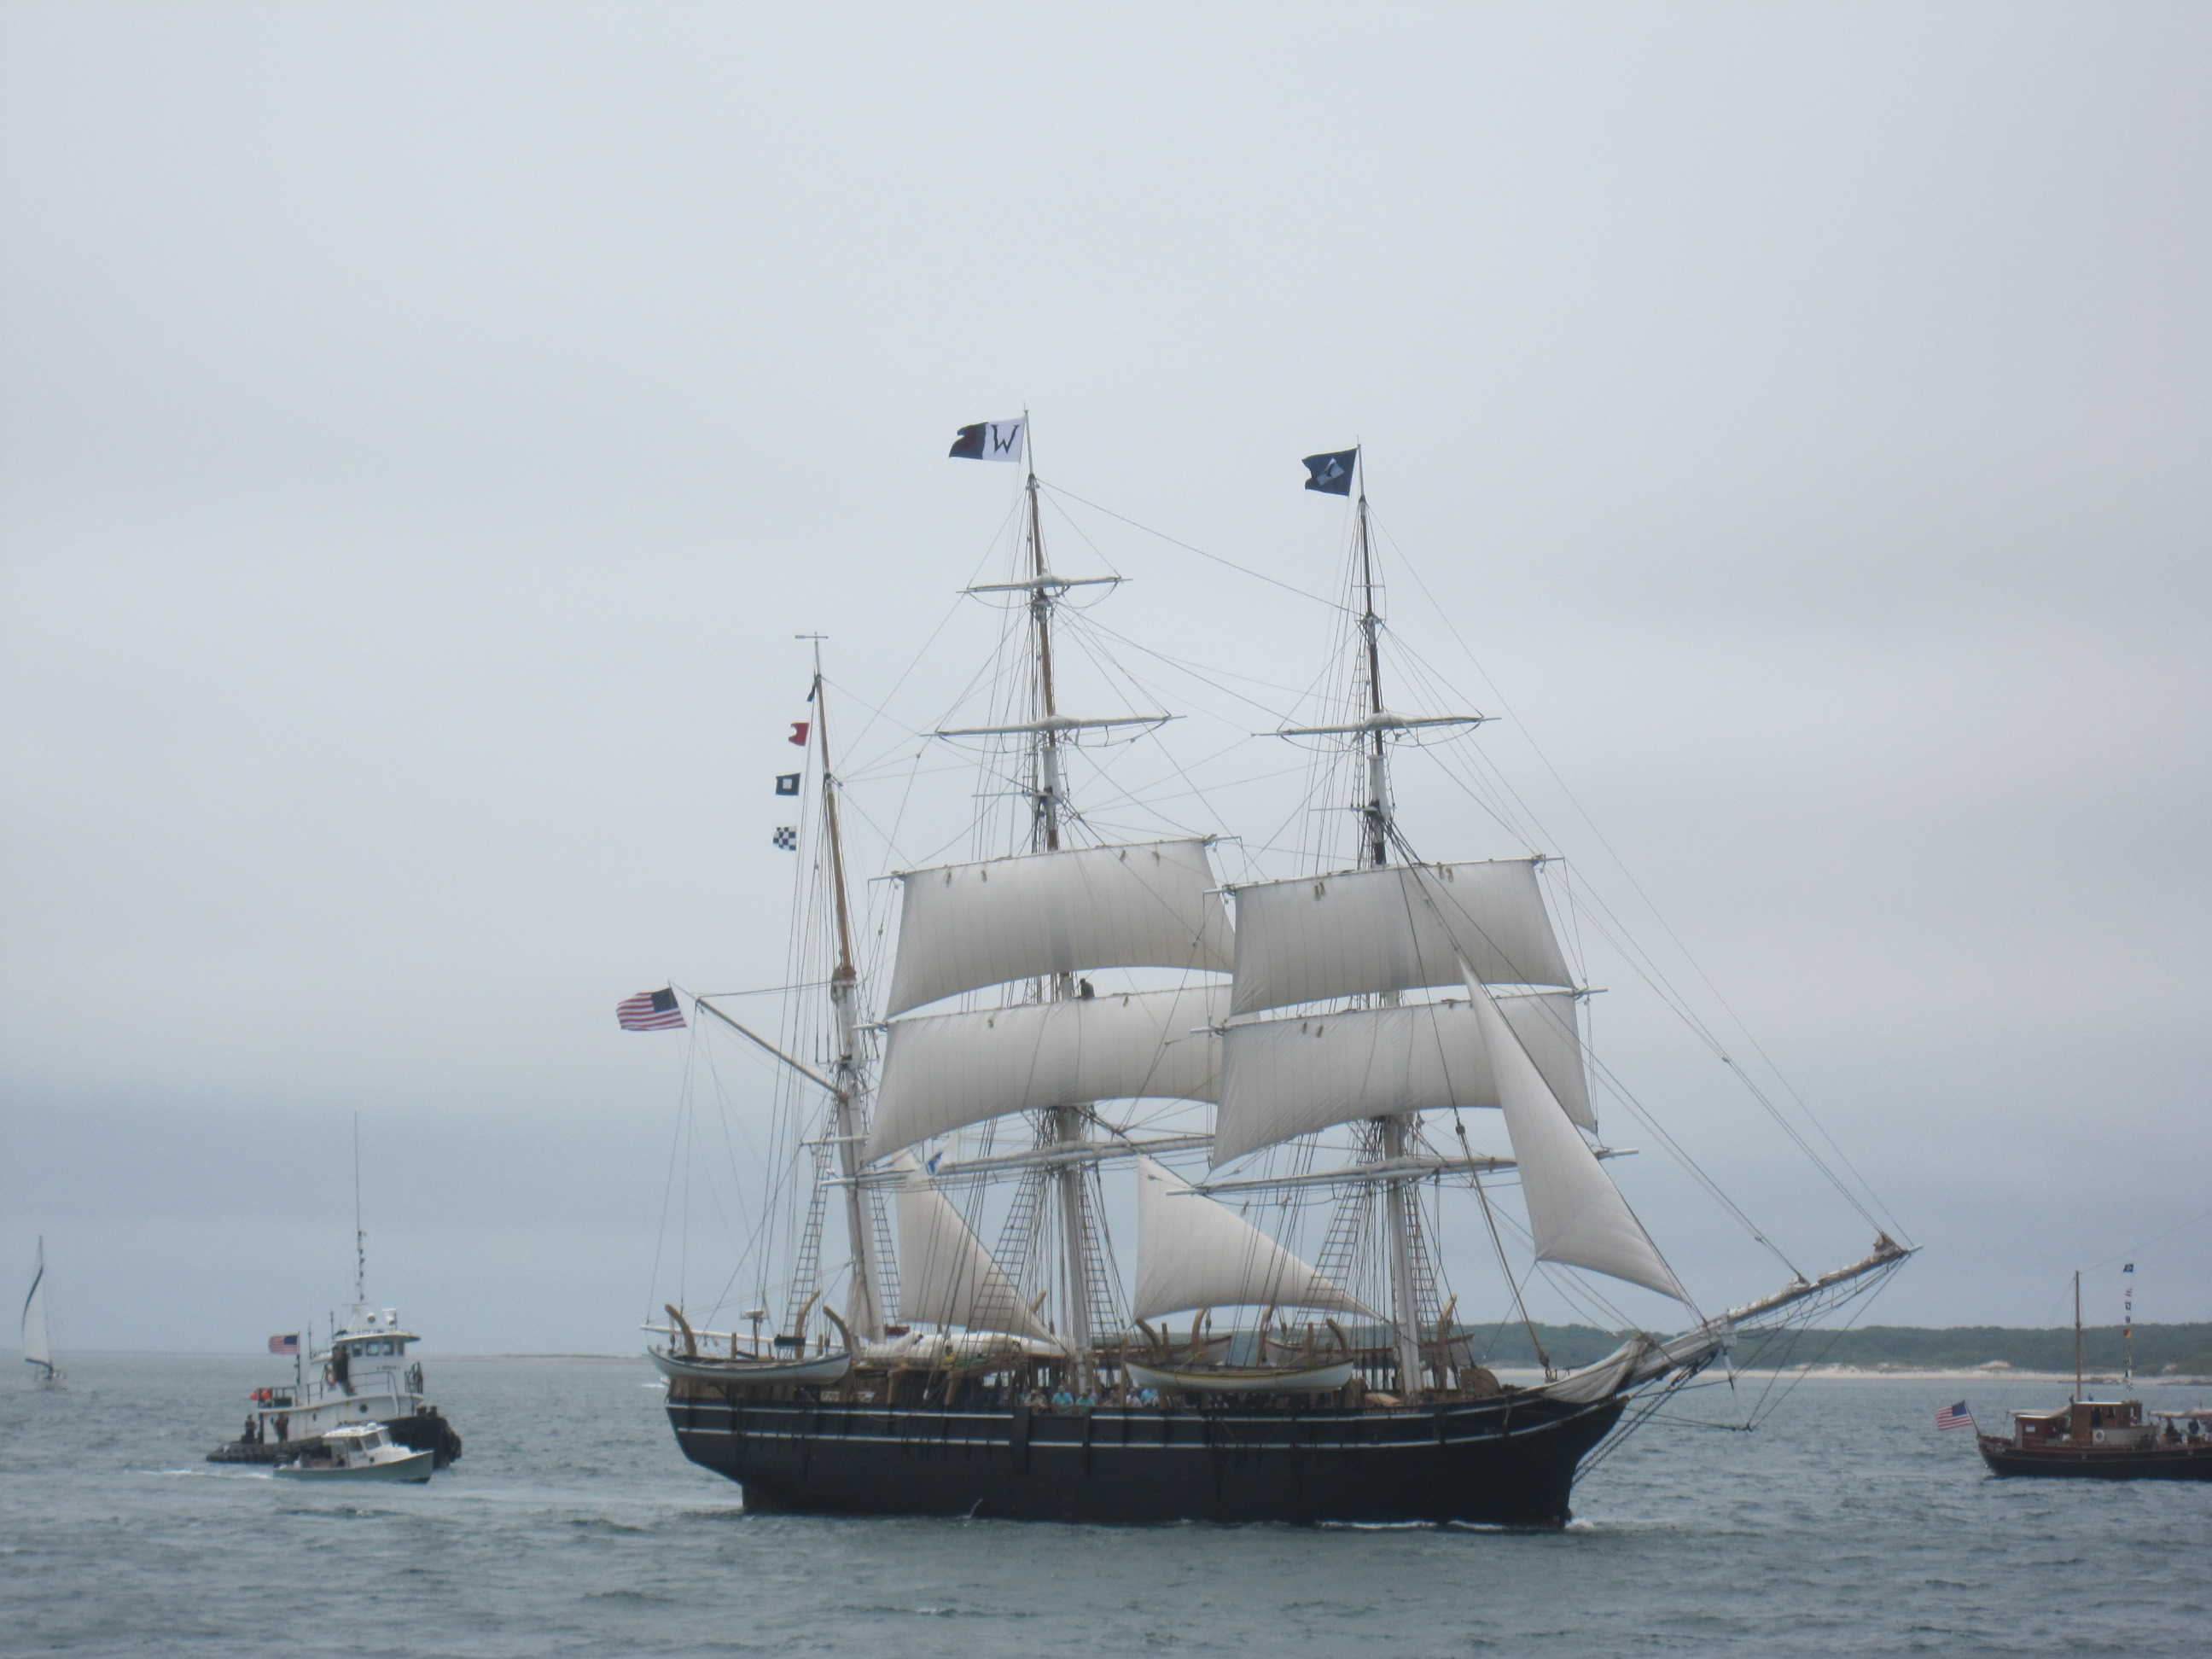 The Charles W. Morgan sails again – the trip home